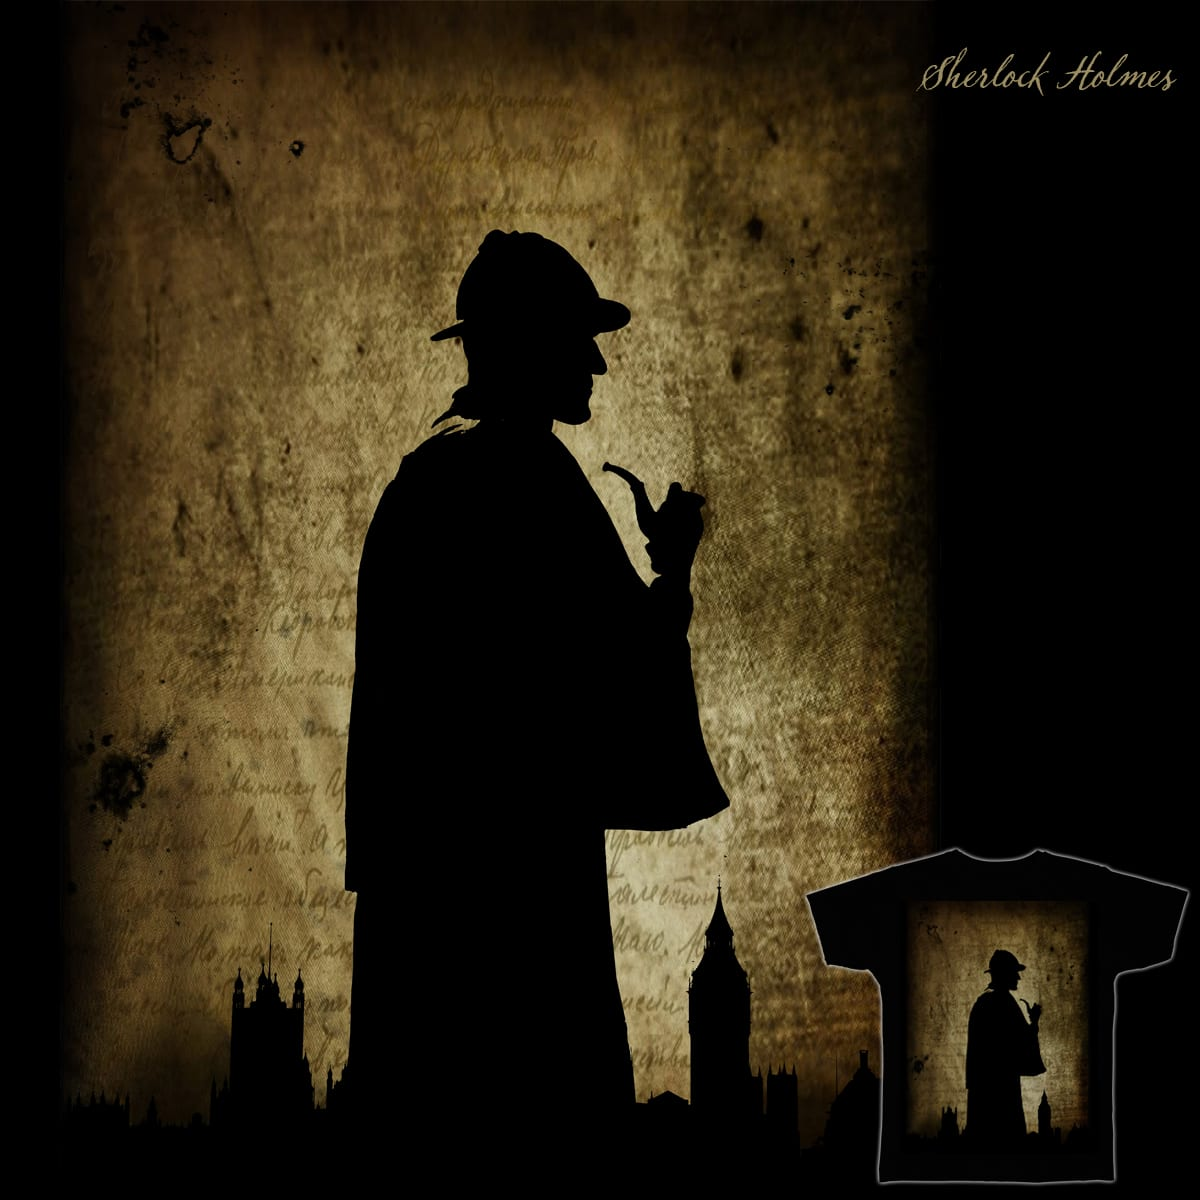 A Study in Silhouette by Jmonsell on Threadless